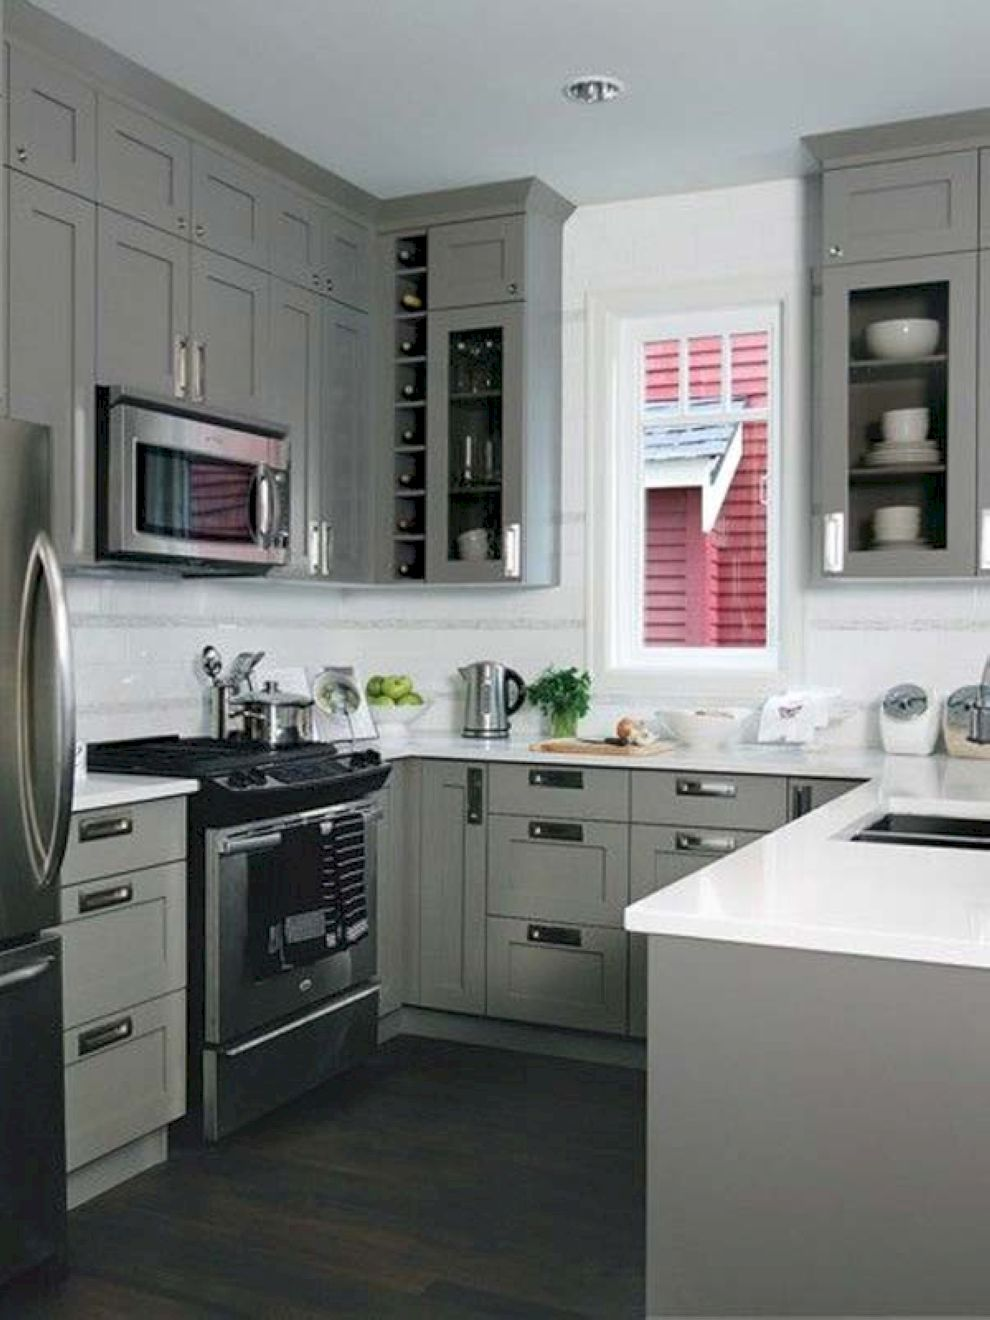 Matchness.com - Match Your Sweet Home  Kitchen remodel layout